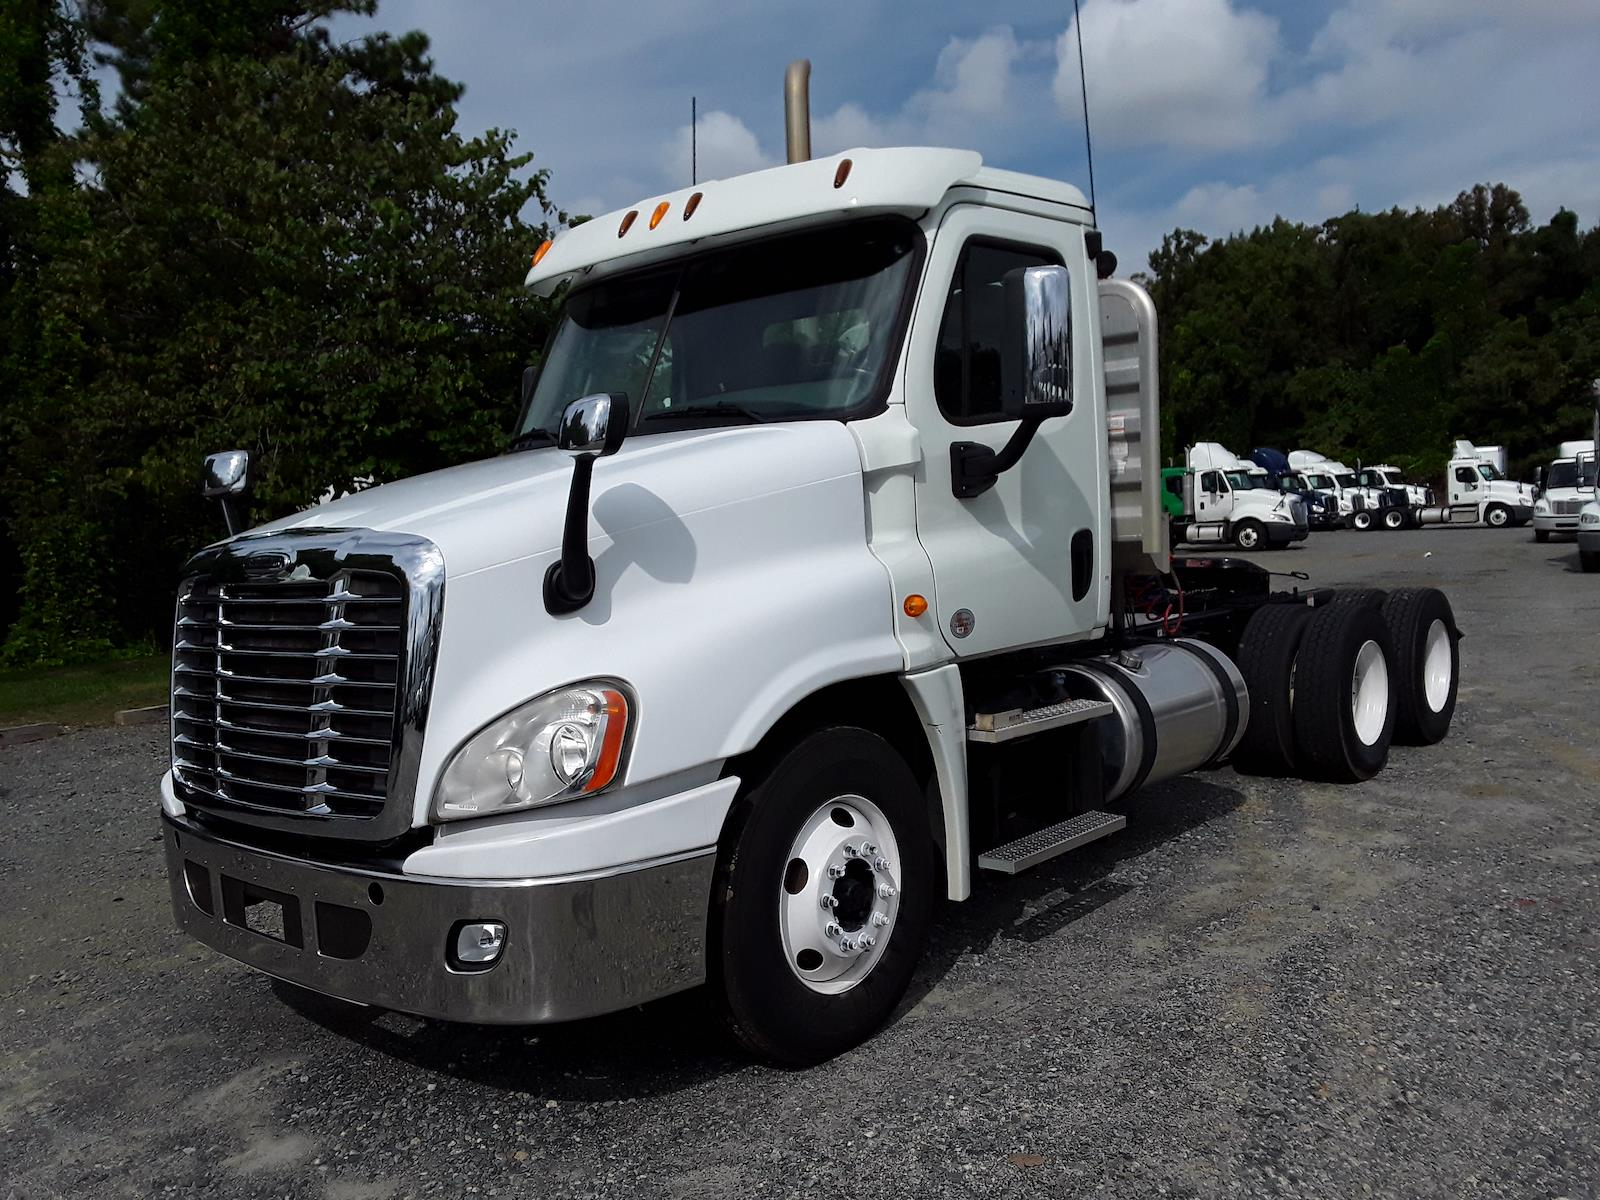 2014 Freightliner Truck 6x4, Tractor #531077 - photo 1